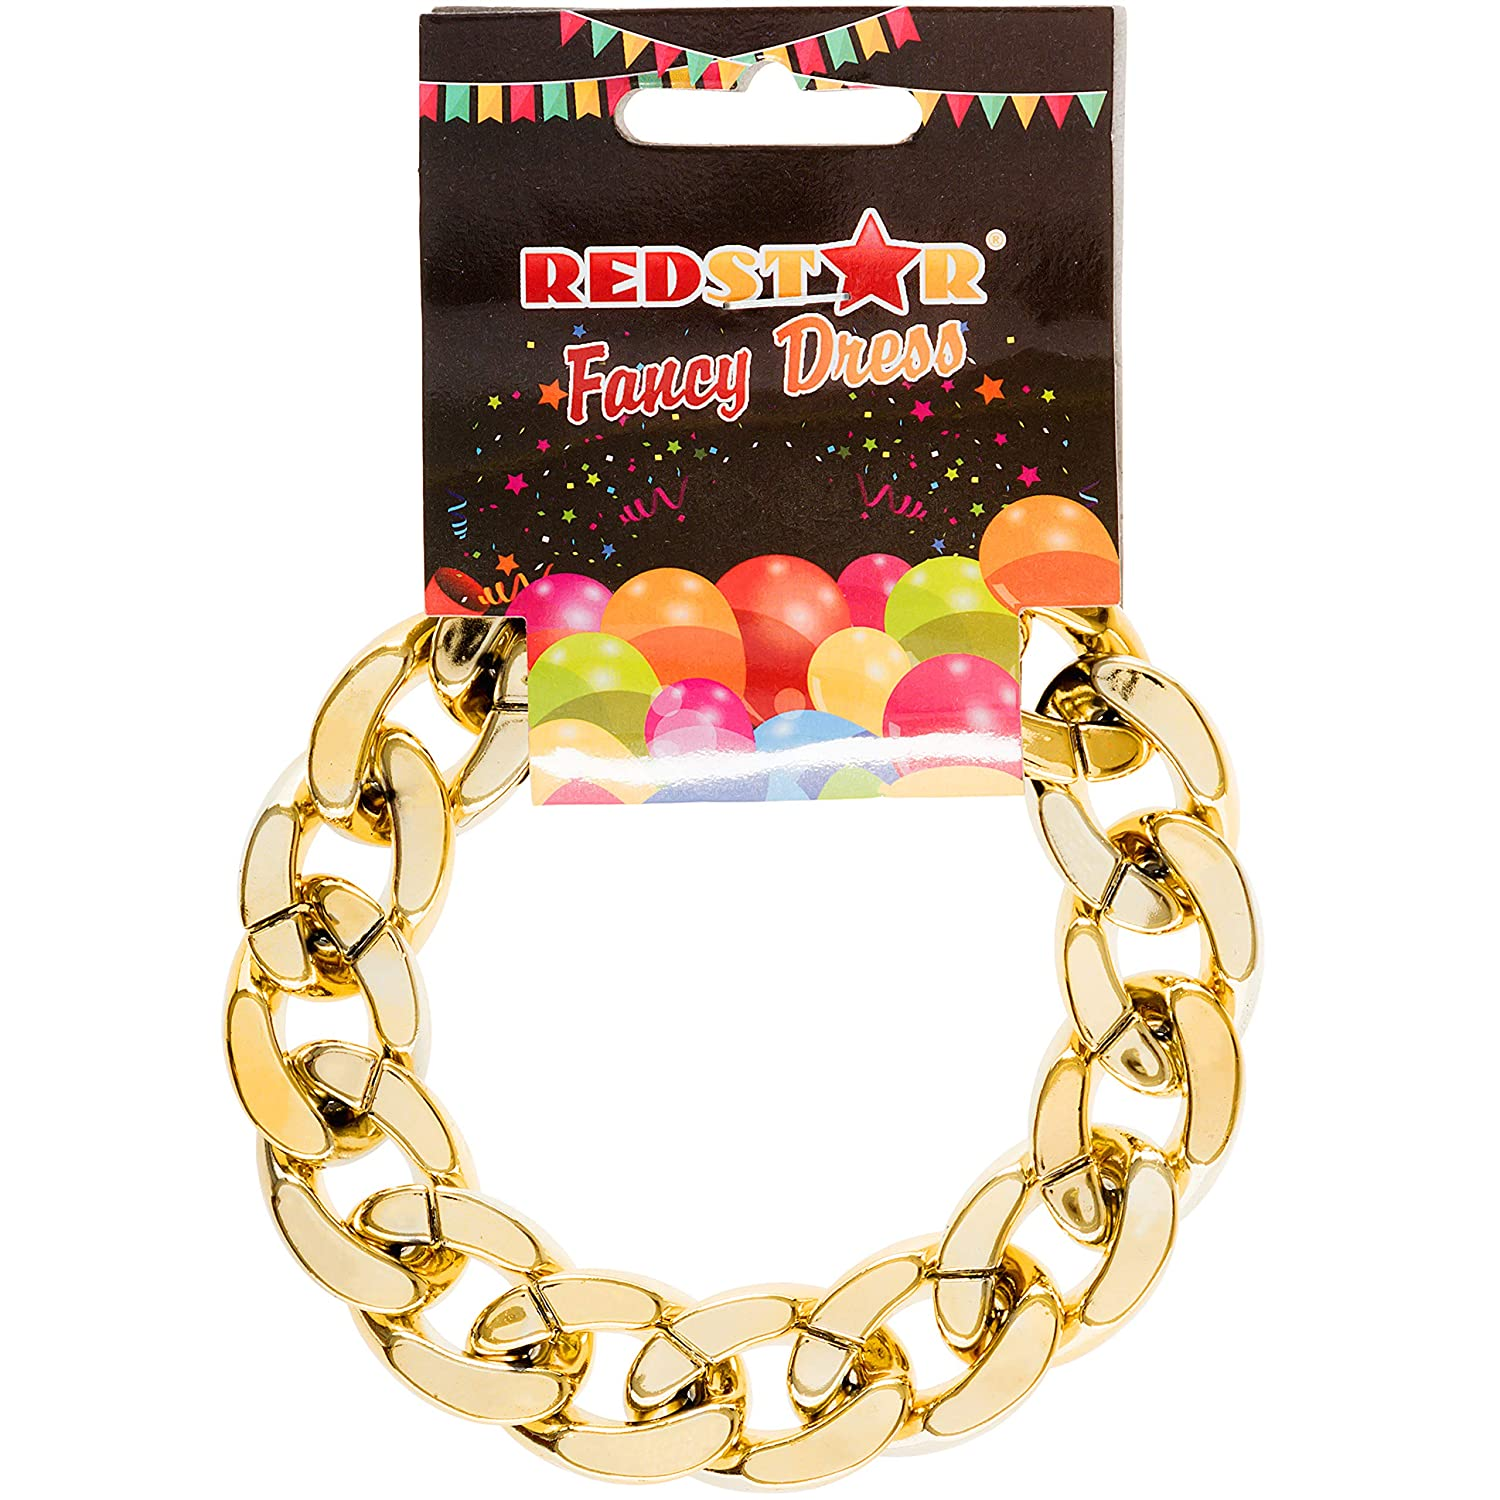 REDSTAR FANCY DRESS Oro Cadena Pulsera Gángster Chav Collar Hip ...